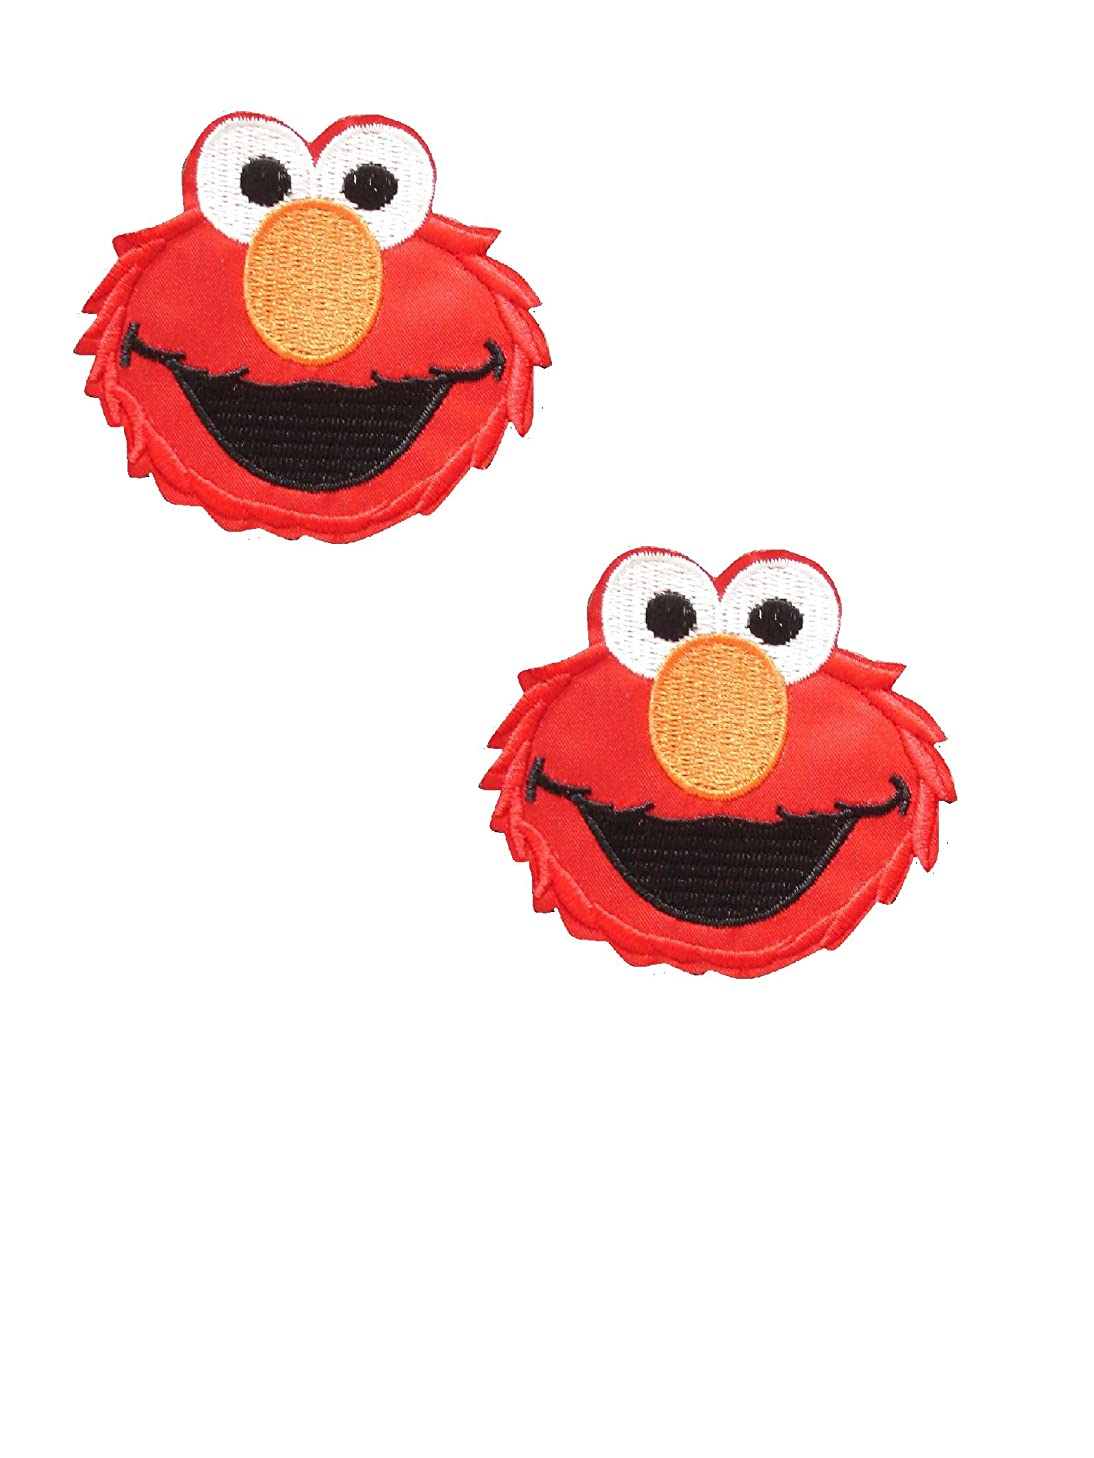 Children Iron On Patch (Lot of 2 pieces) Fabric Applique Motif Decal 2.75 x 2.375  inches